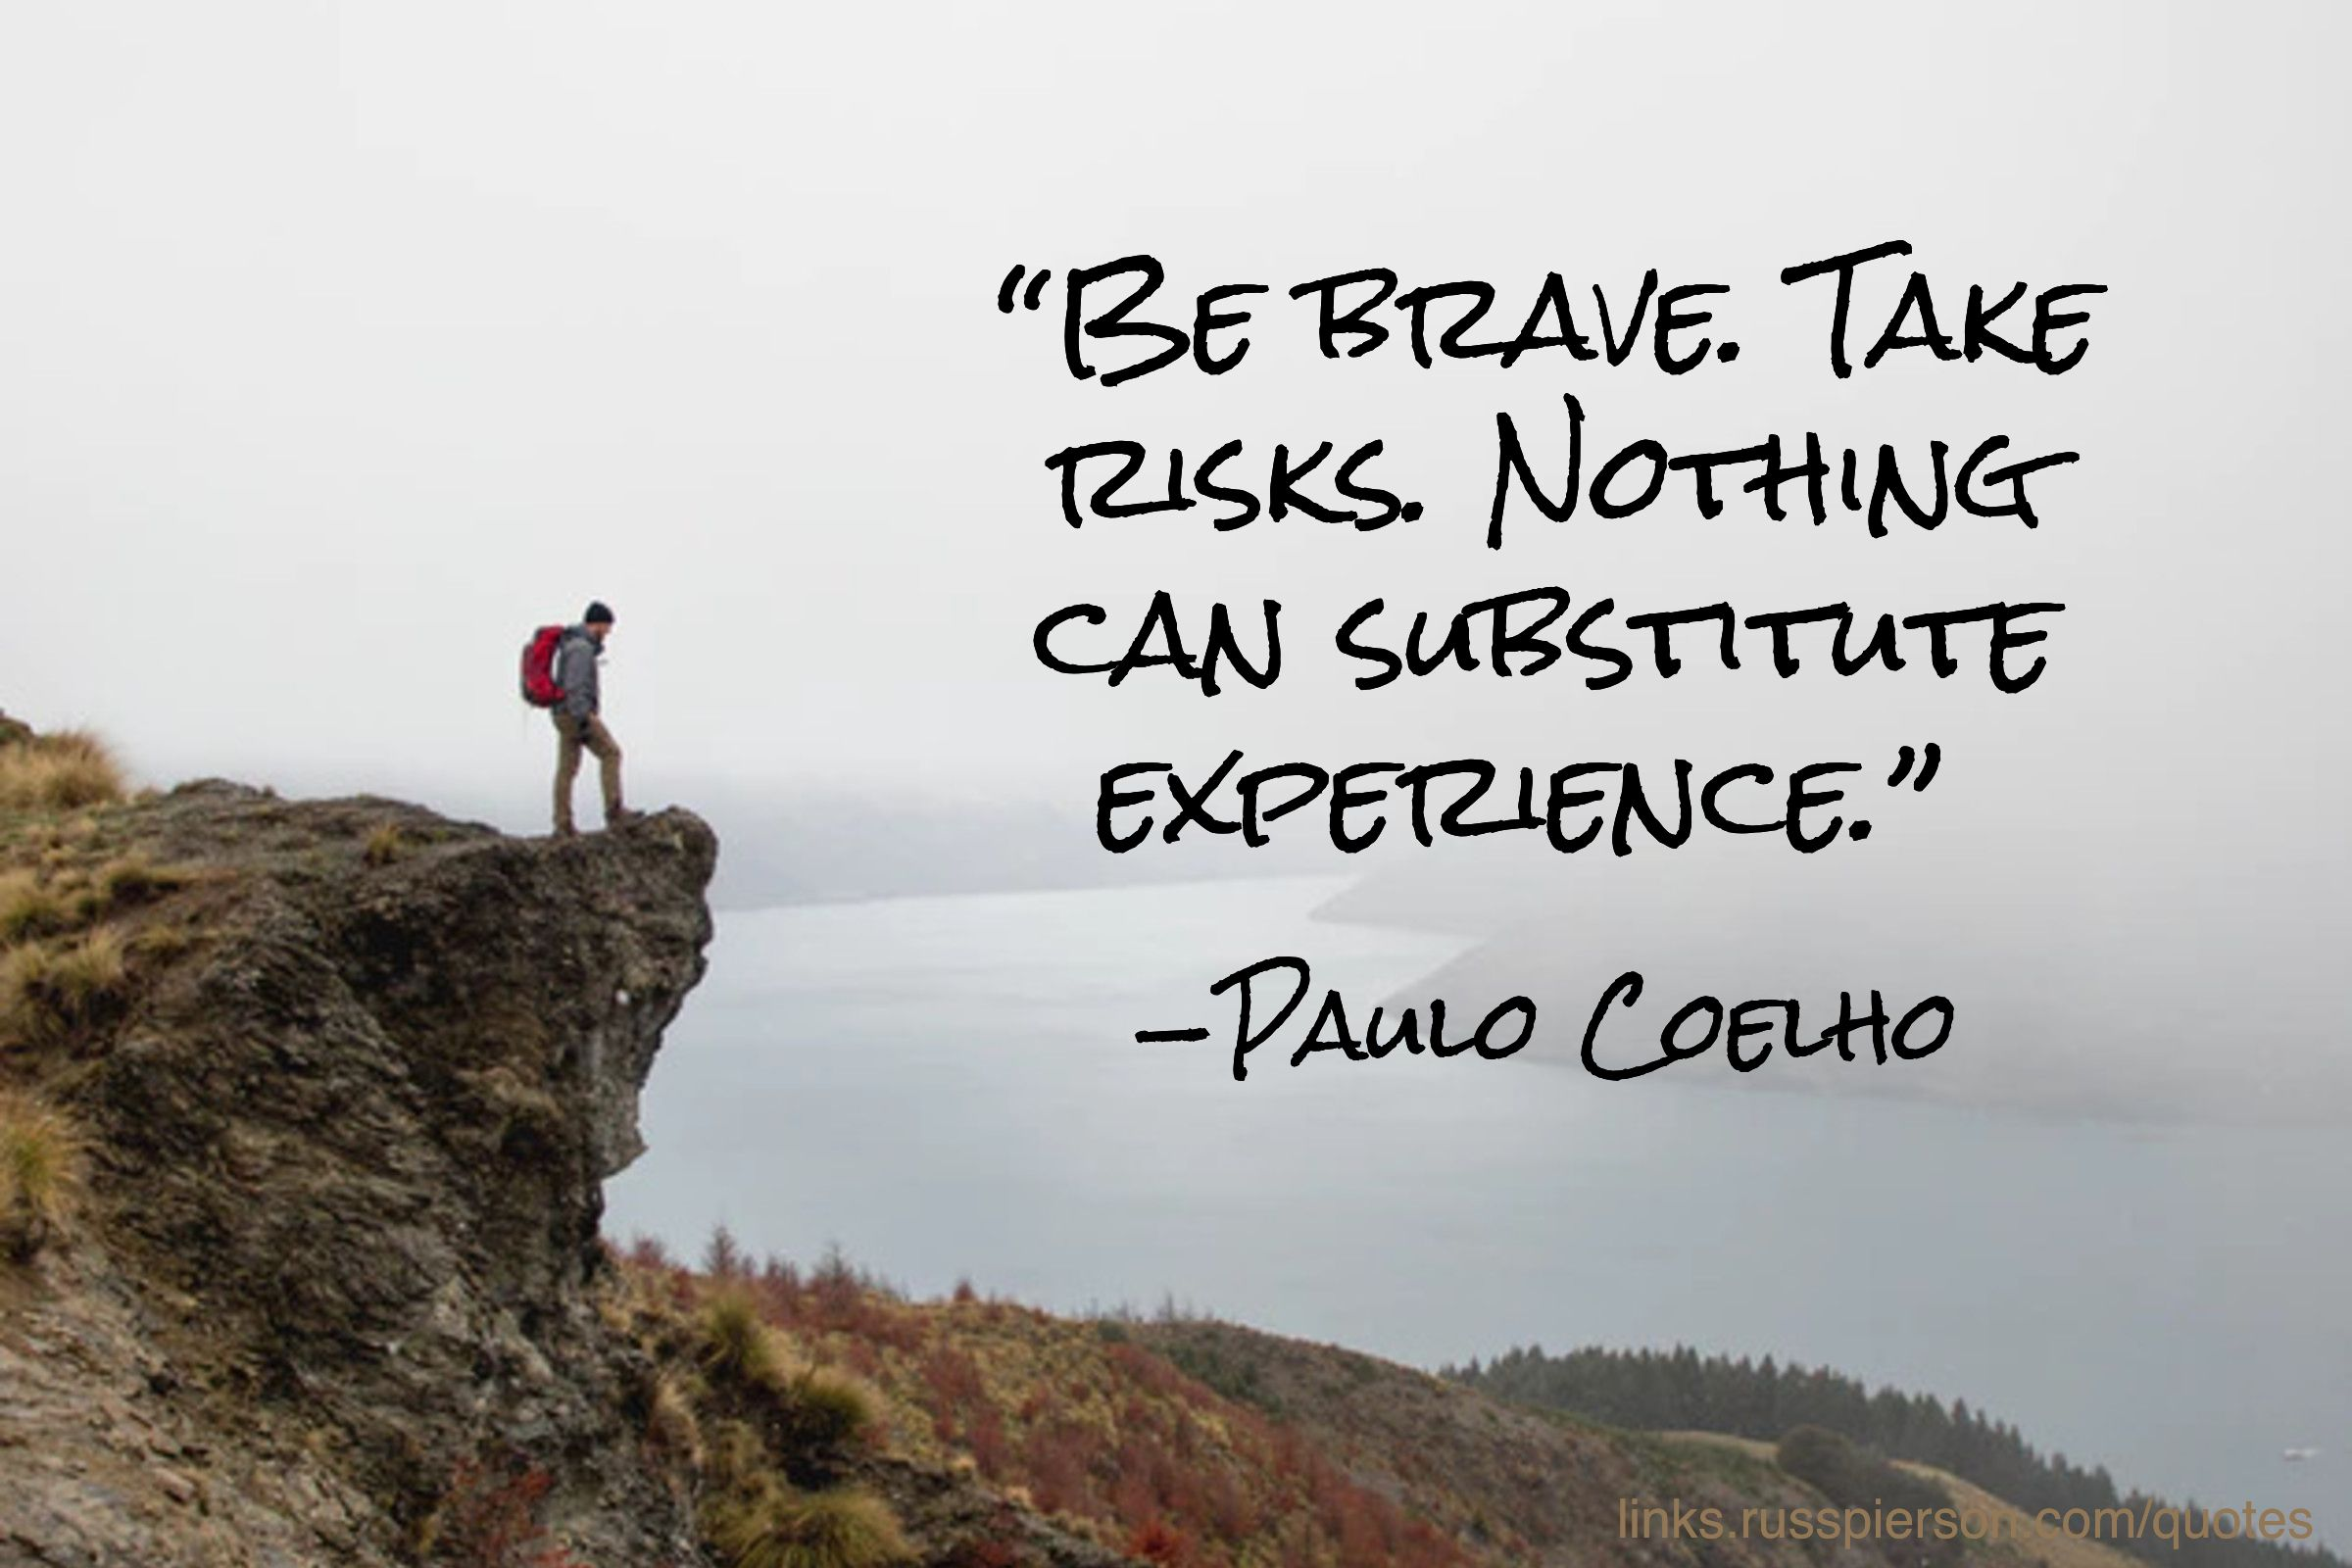 [Image] Be brave. Take risks. Nothing can substitute experience.